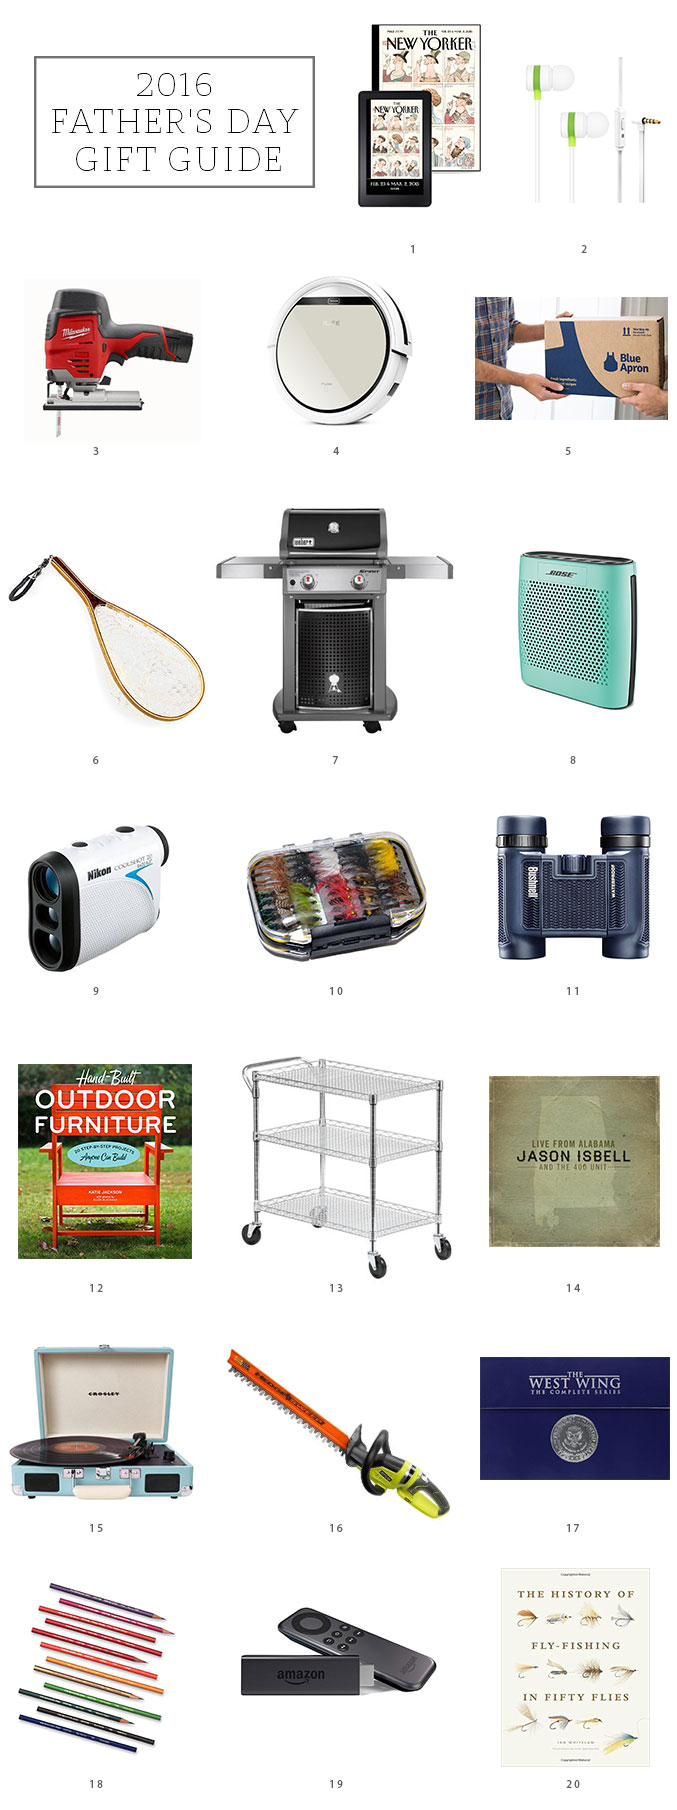 http://www.dreamgreendiy.com/wp-content/uploads/2016/06/03-35434-post/2016-Fathers-Day-Gift-Guide.jpg